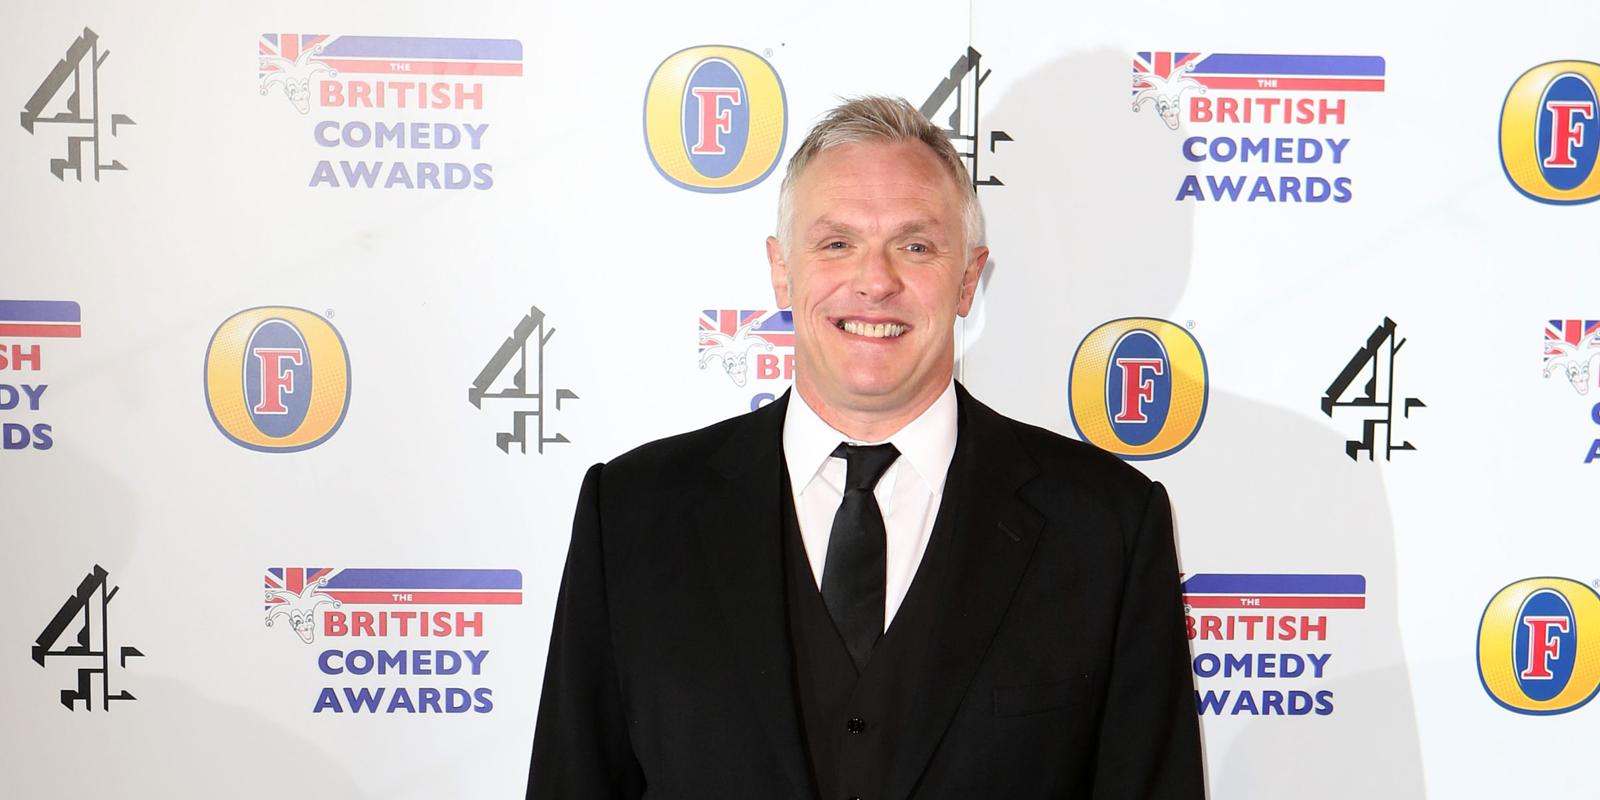 greg davies wikigreg davies height, greg davies ryan gosling, greg davies impersonates chris eubank, greg davies story, greg davies instagram, greg davies you magnificent beast, greg davies, greg davies tour, greg davies stand up, greg davies married, greg davies wife, greg davies rik mayall, greg davies chris eubank, greg davies live, greg davies man down, greg davies comedian, greg davies imdb, greg davies wiki, greg davies teacher, greg davies would i lie to you